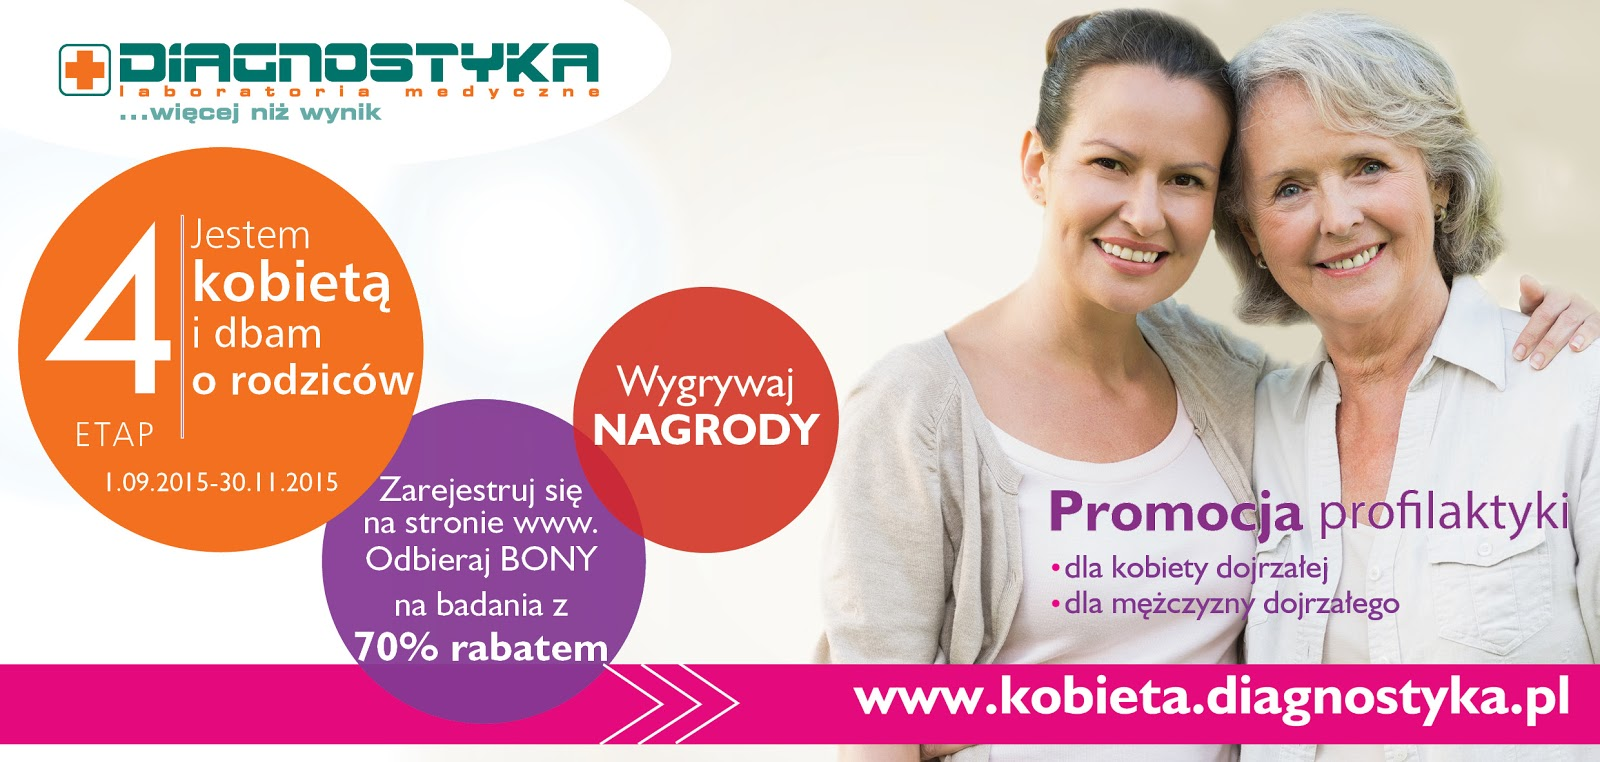 http://www.kobieta.diagnostyka.pl/?utm_source=reachblogger&utm_medium=blogi&utm_campaign=miraga80.blogspot.com